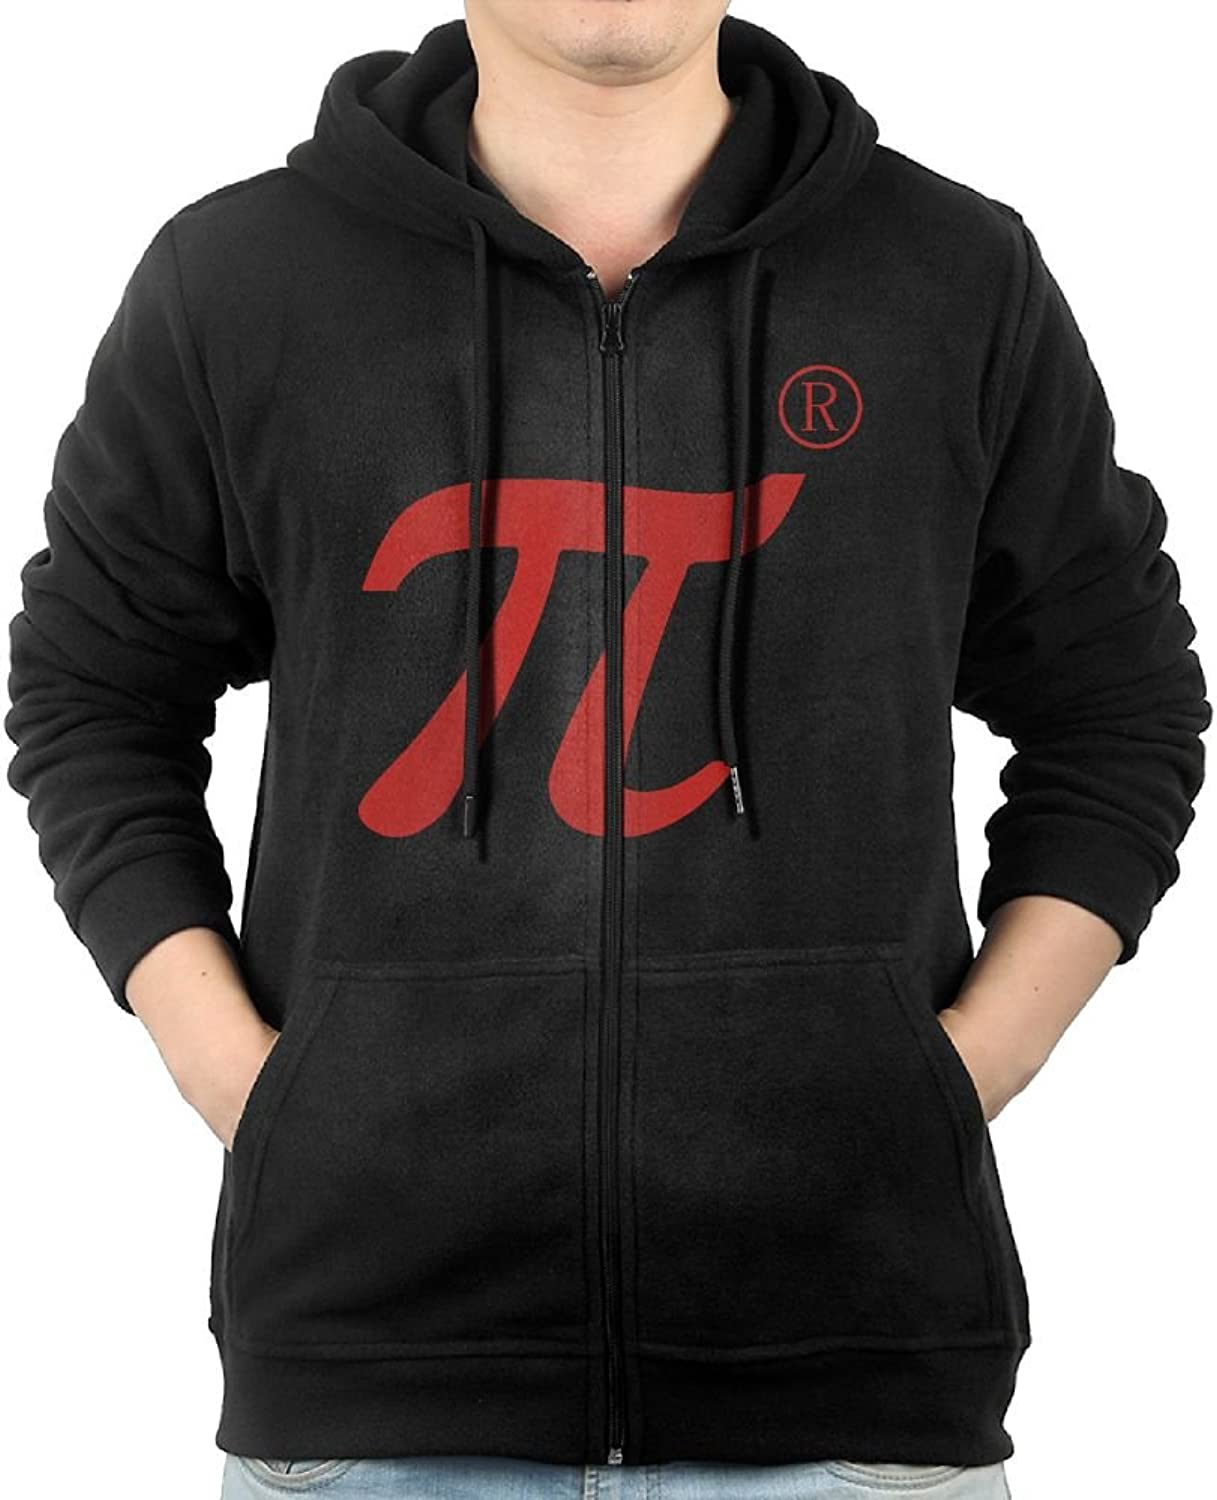 I Ate Some Pie And It Was Delicious Mens Guys Guys Sweatershirt